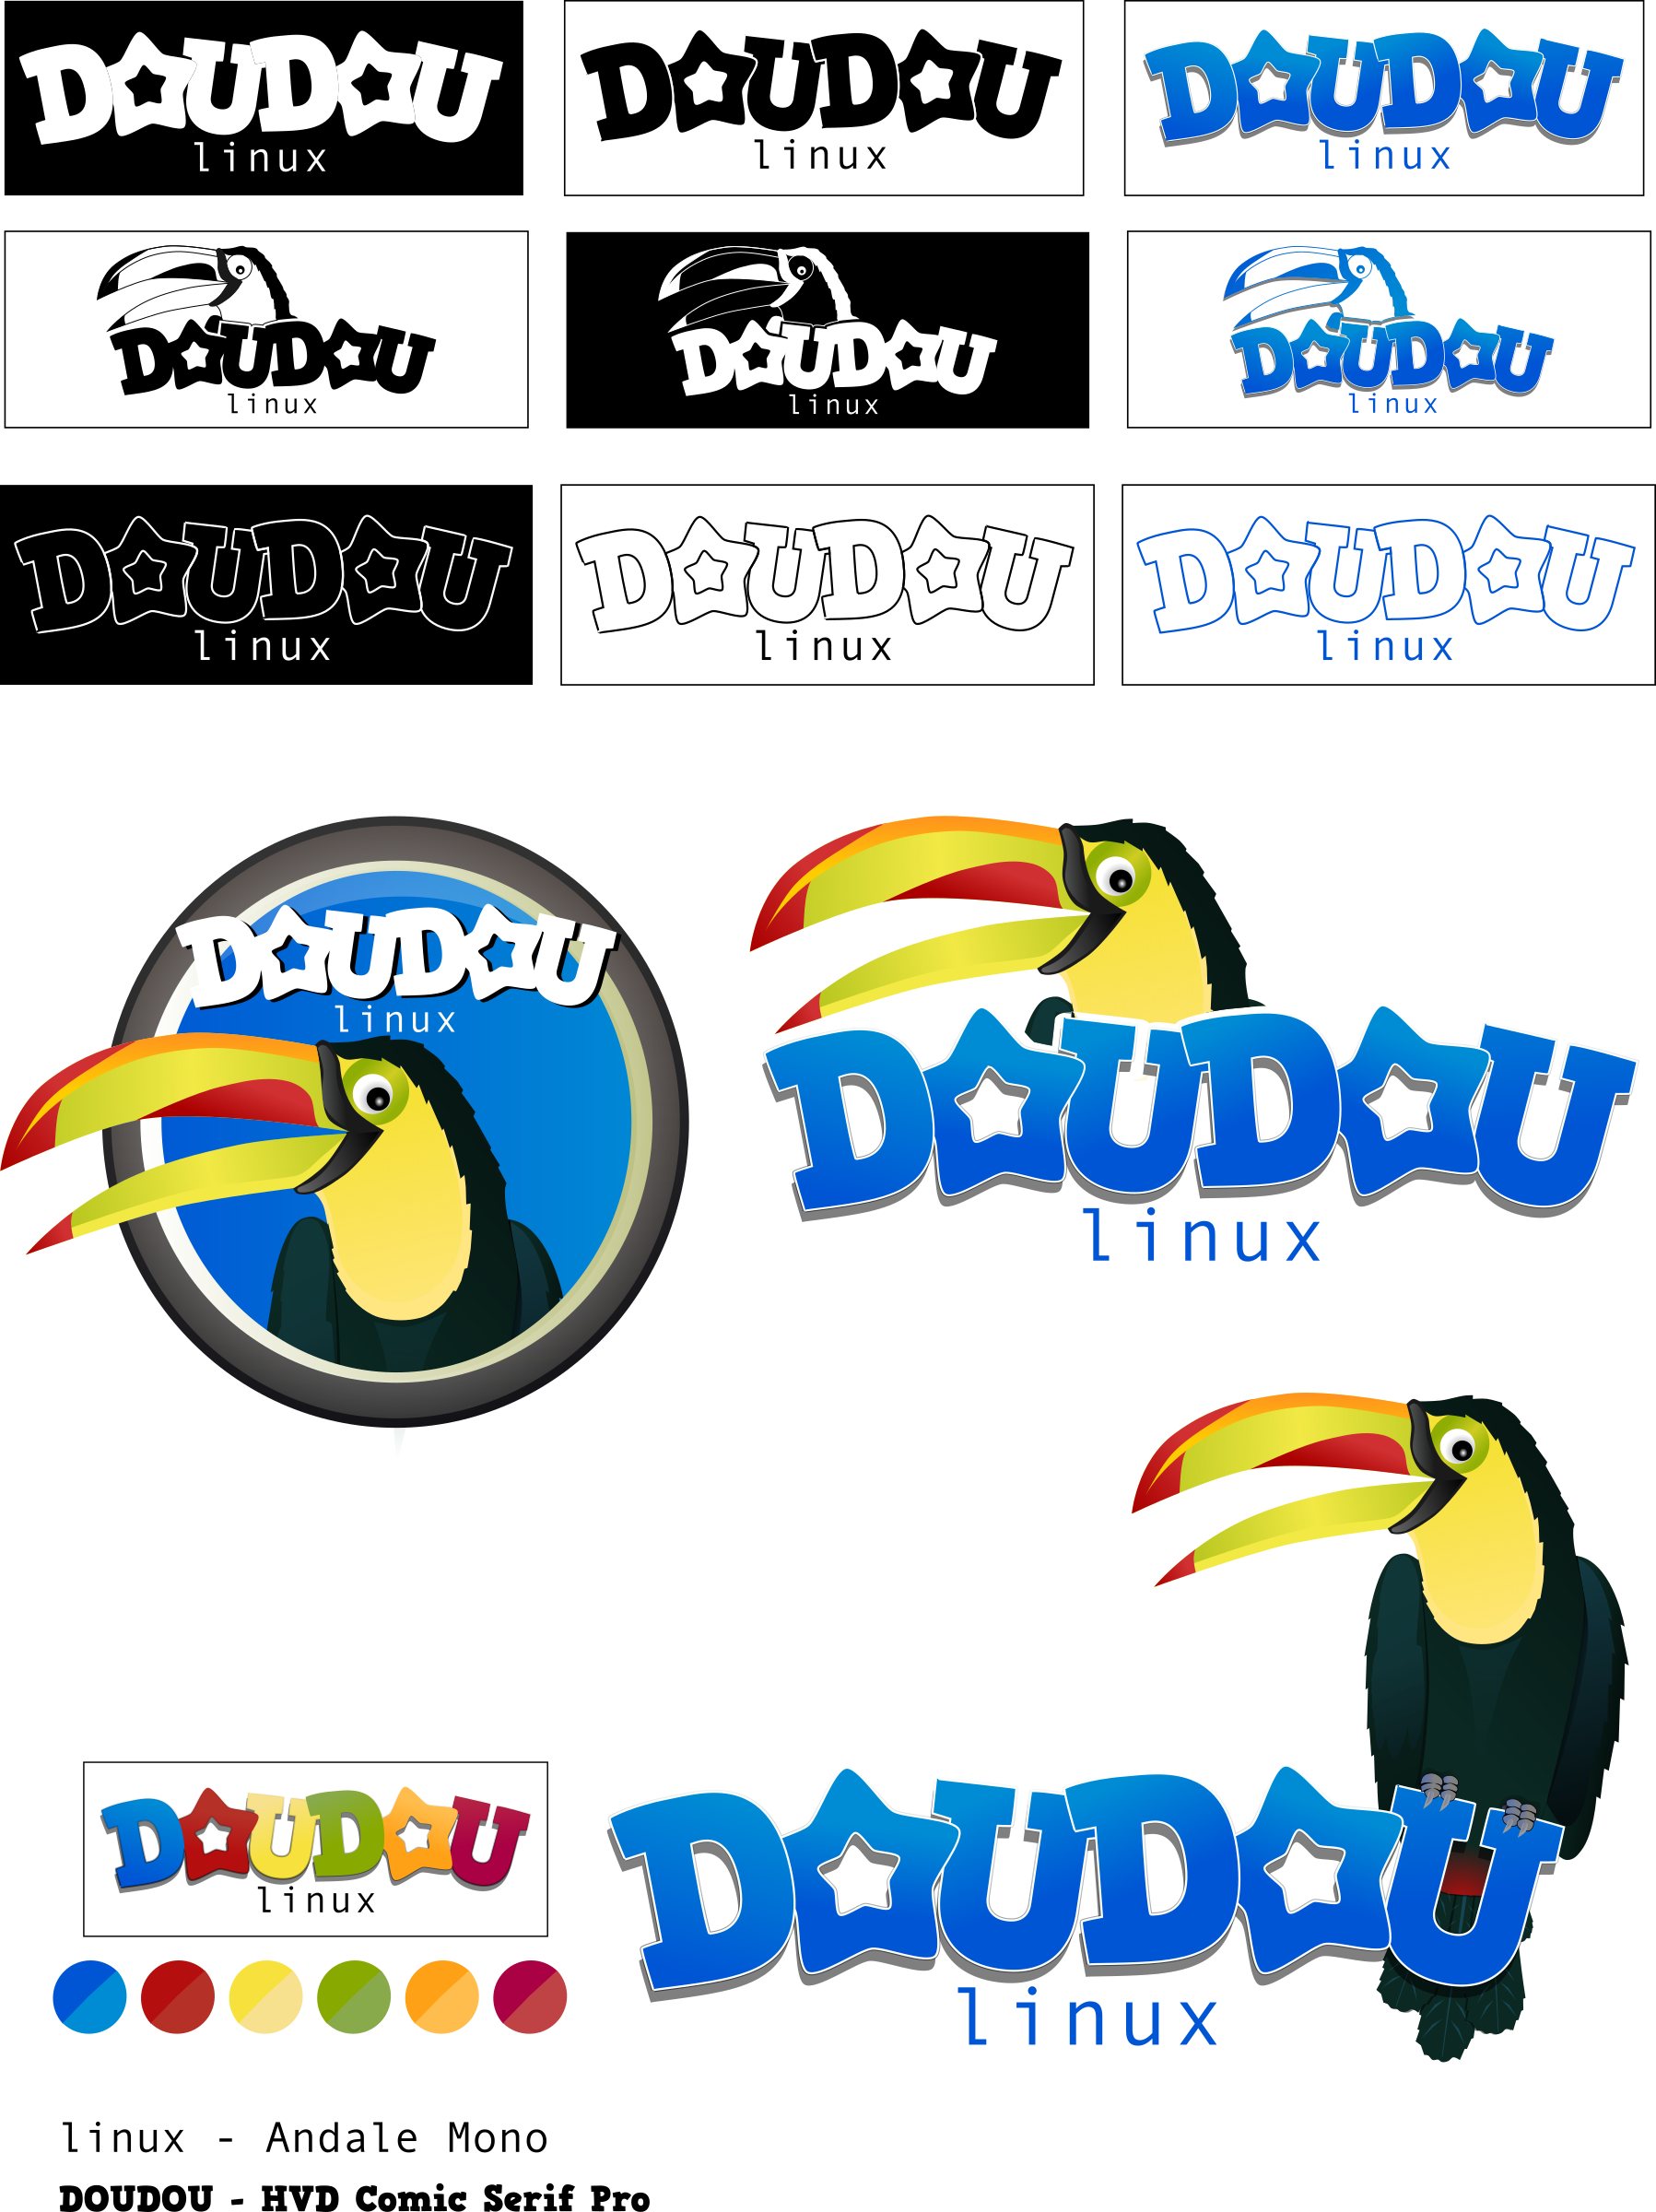 DouDou linux - Mascot and Logo Contest by gnokii